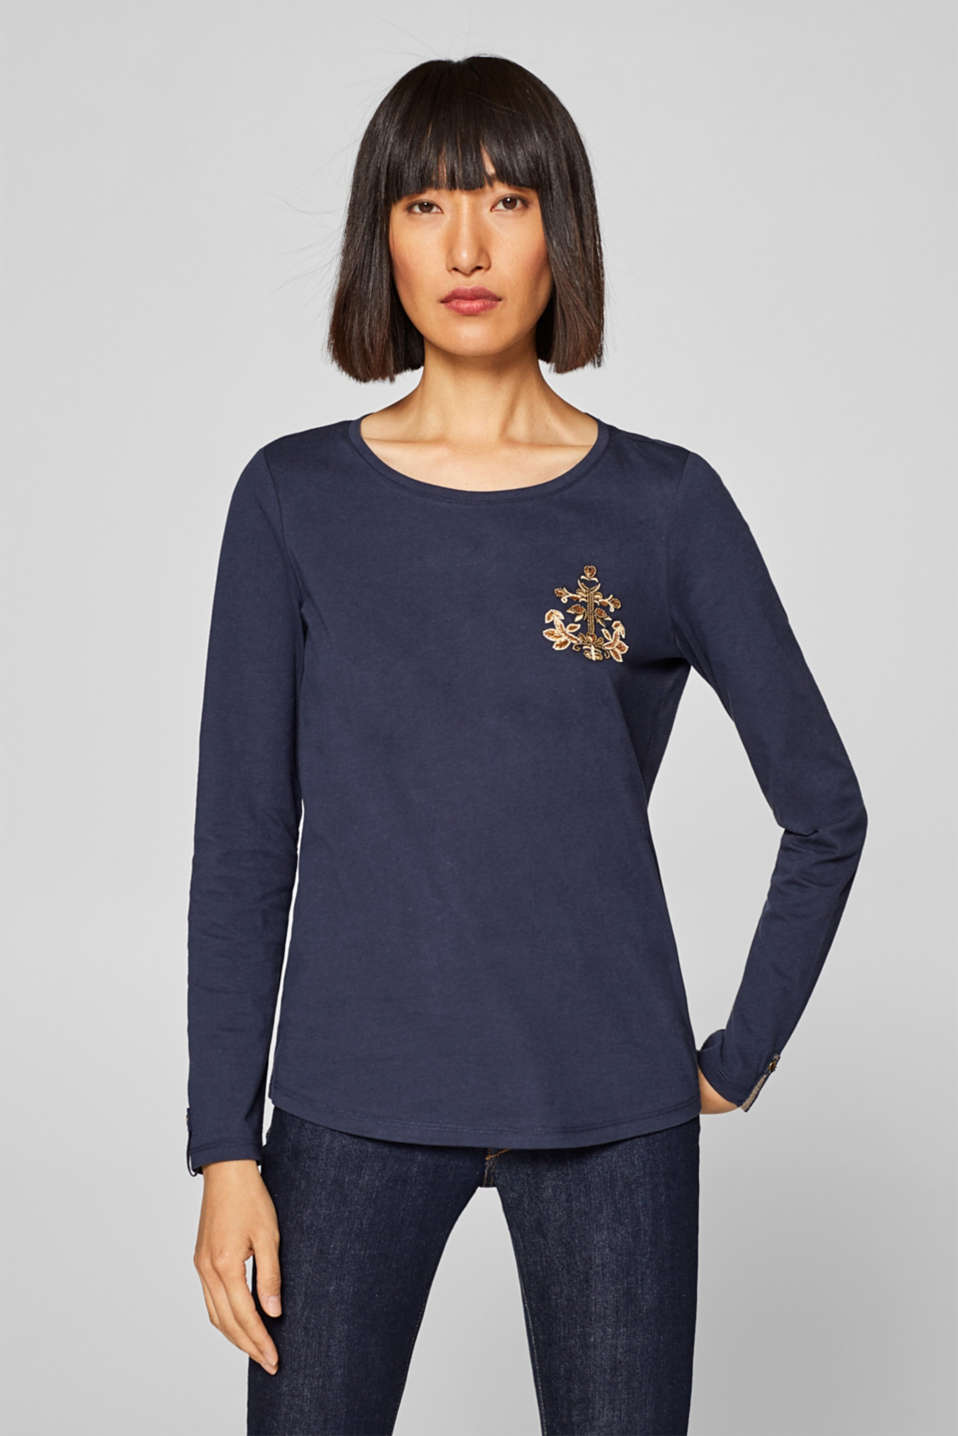 Esprit - Long sleeve top with appliquéd beads